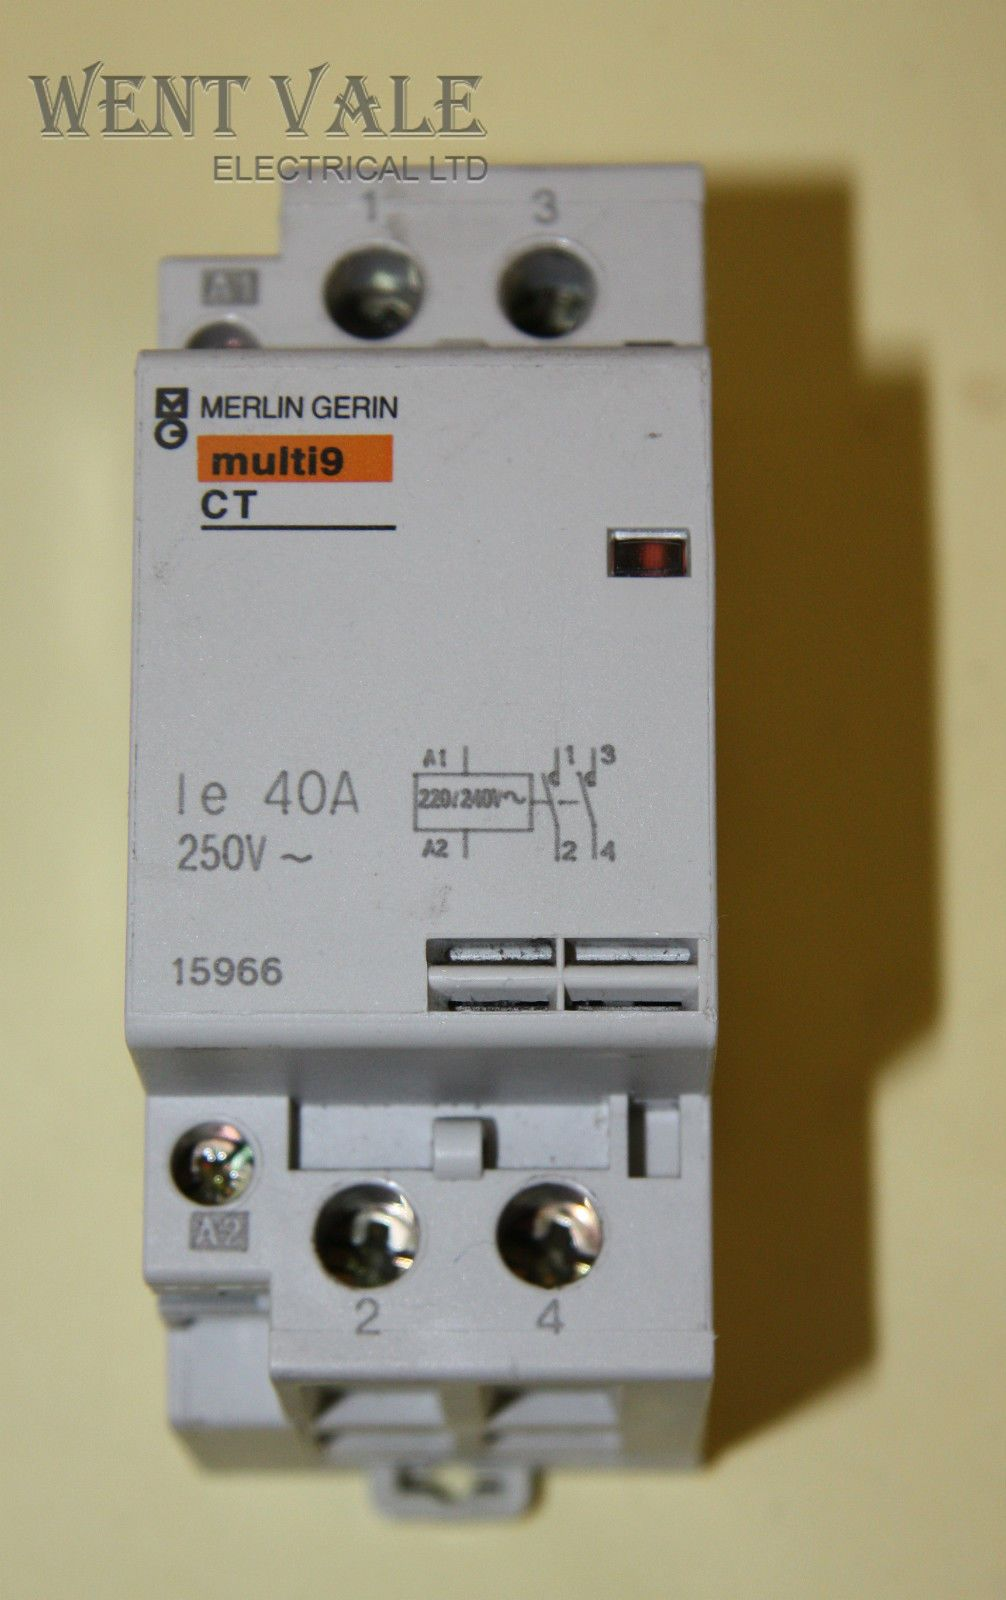 merlin gerin multi 9 15966 ct double pole 40a no contactor 240v coil used. Black Bedroom Furniture Sets. Home Design Ideas